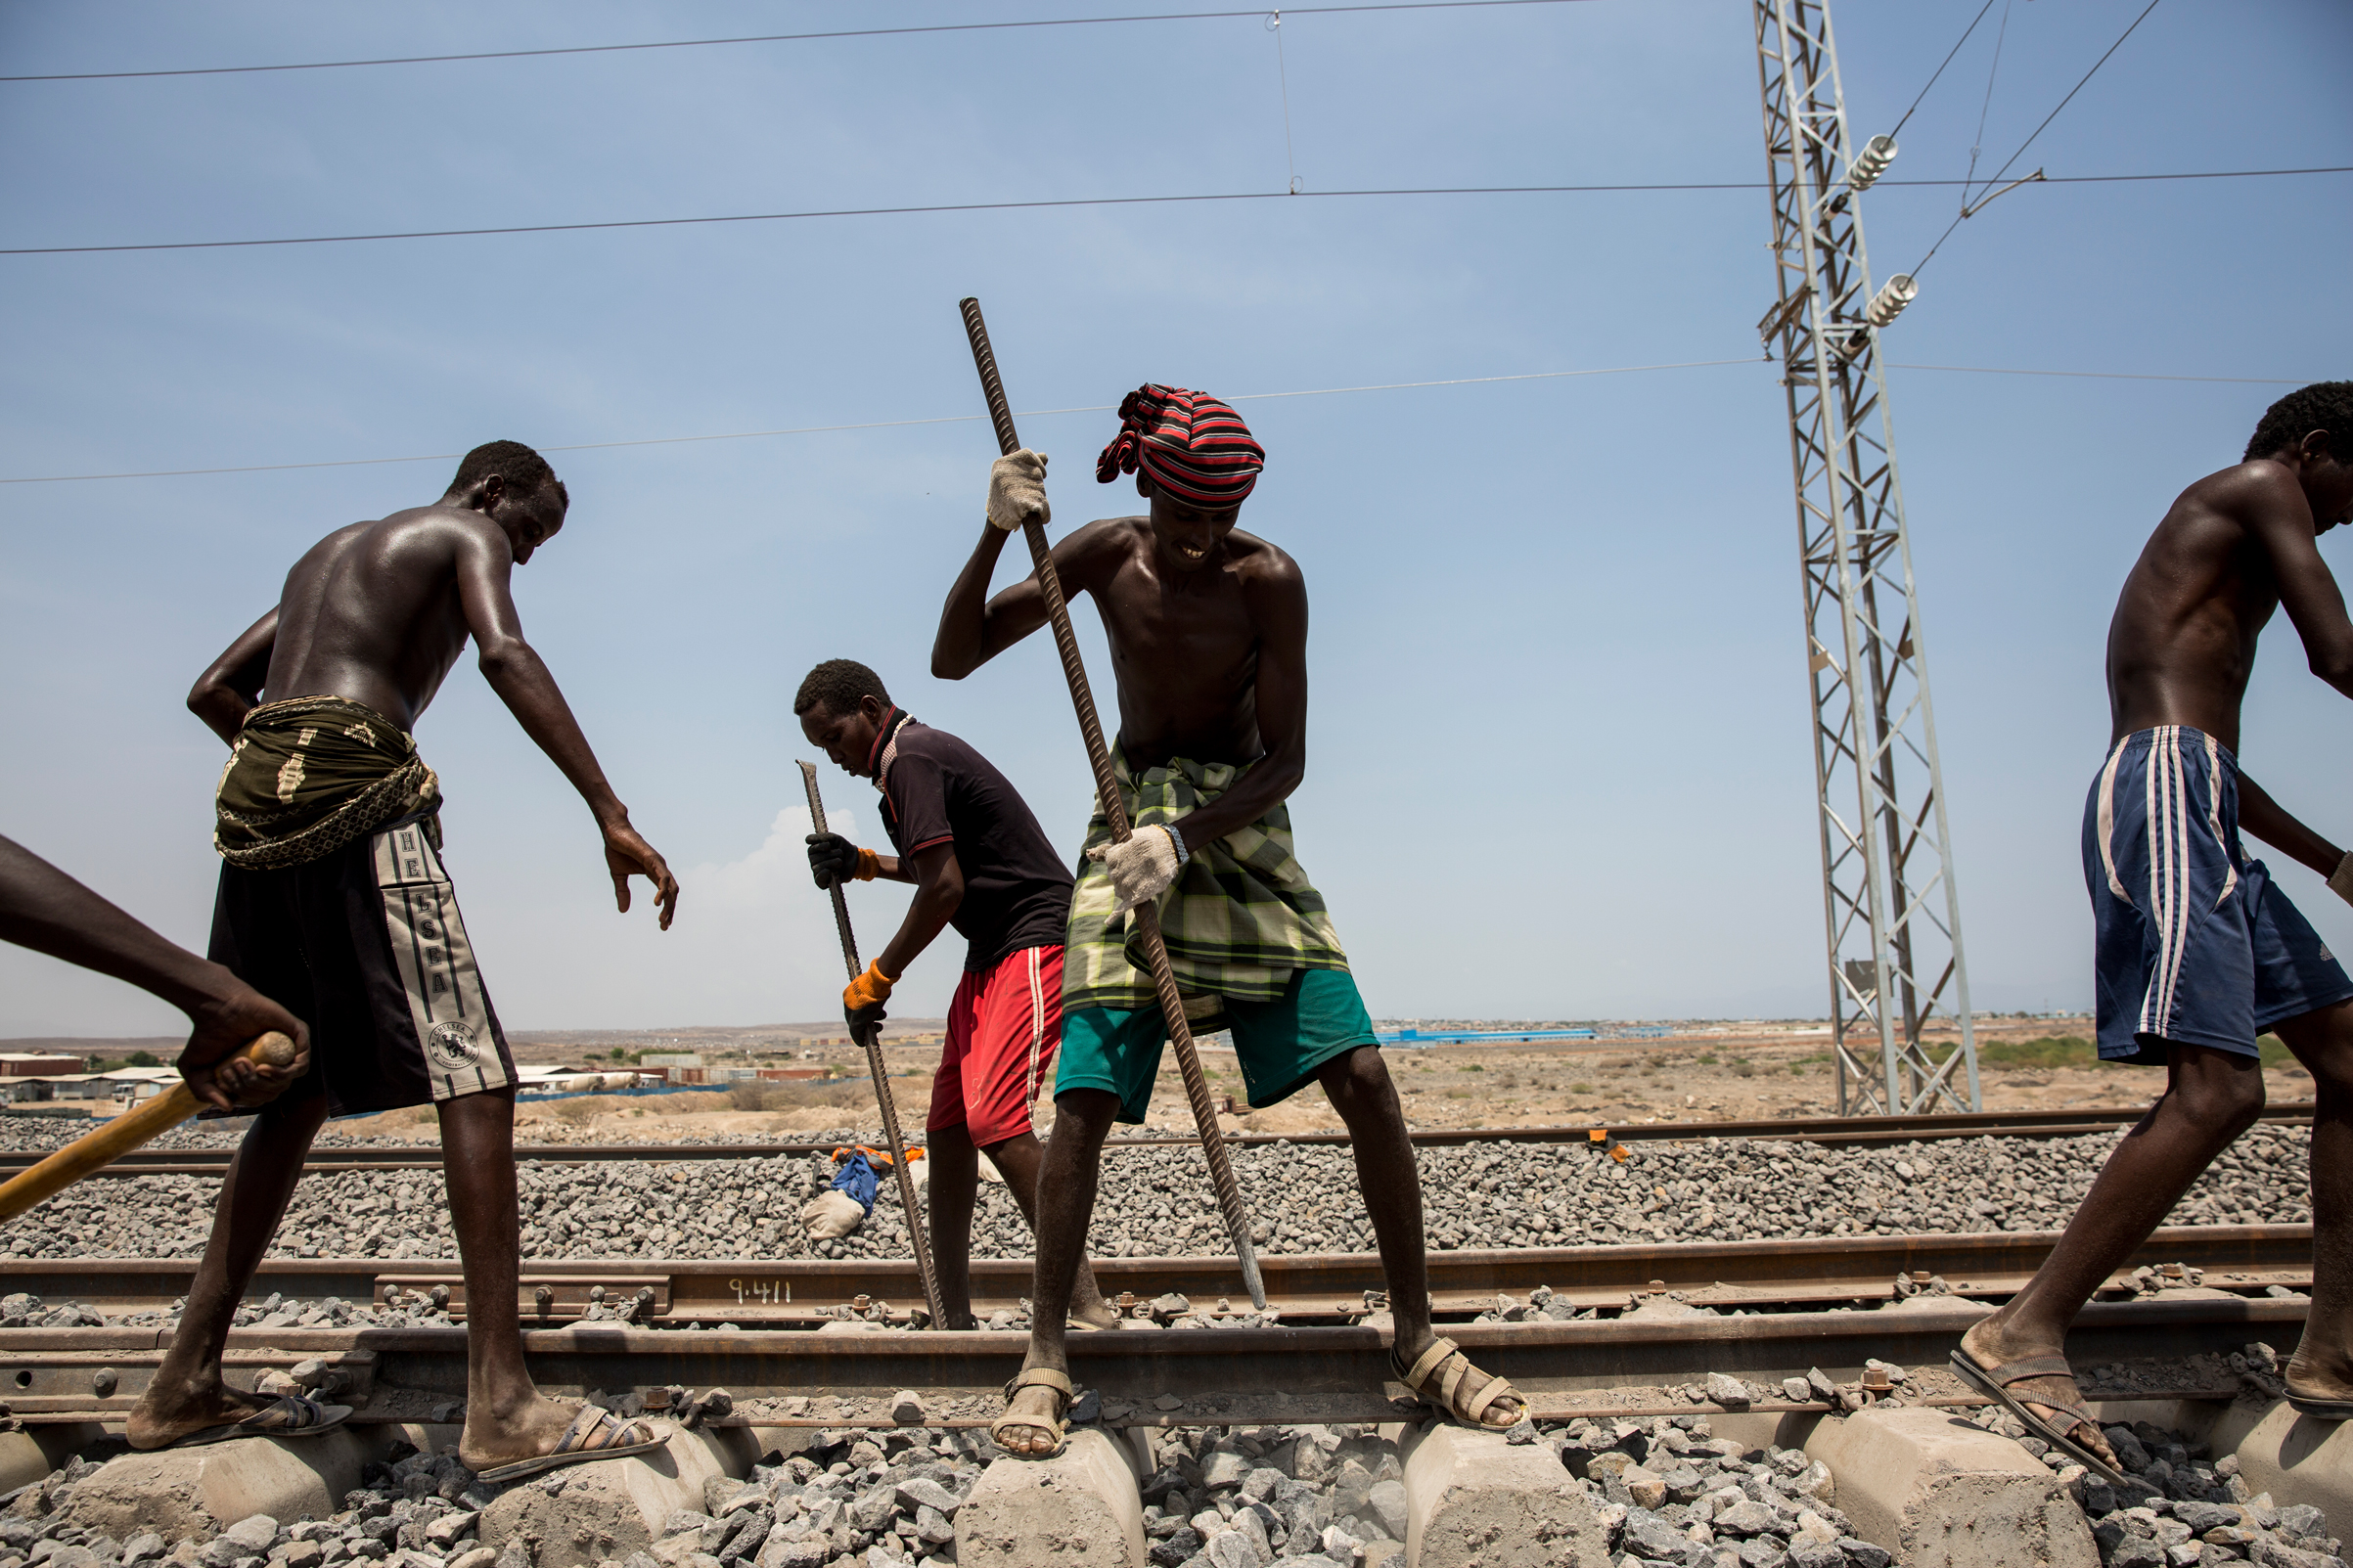 Workers maintain and check the Addis Ababa-Djibouti railway during a trial run in Addis Ababa, Ethiopia, on Sept. 28, 2016. Days later, after four years of construction and funding by the Chinese, it opened to become Africa's first cross-border electric railway.